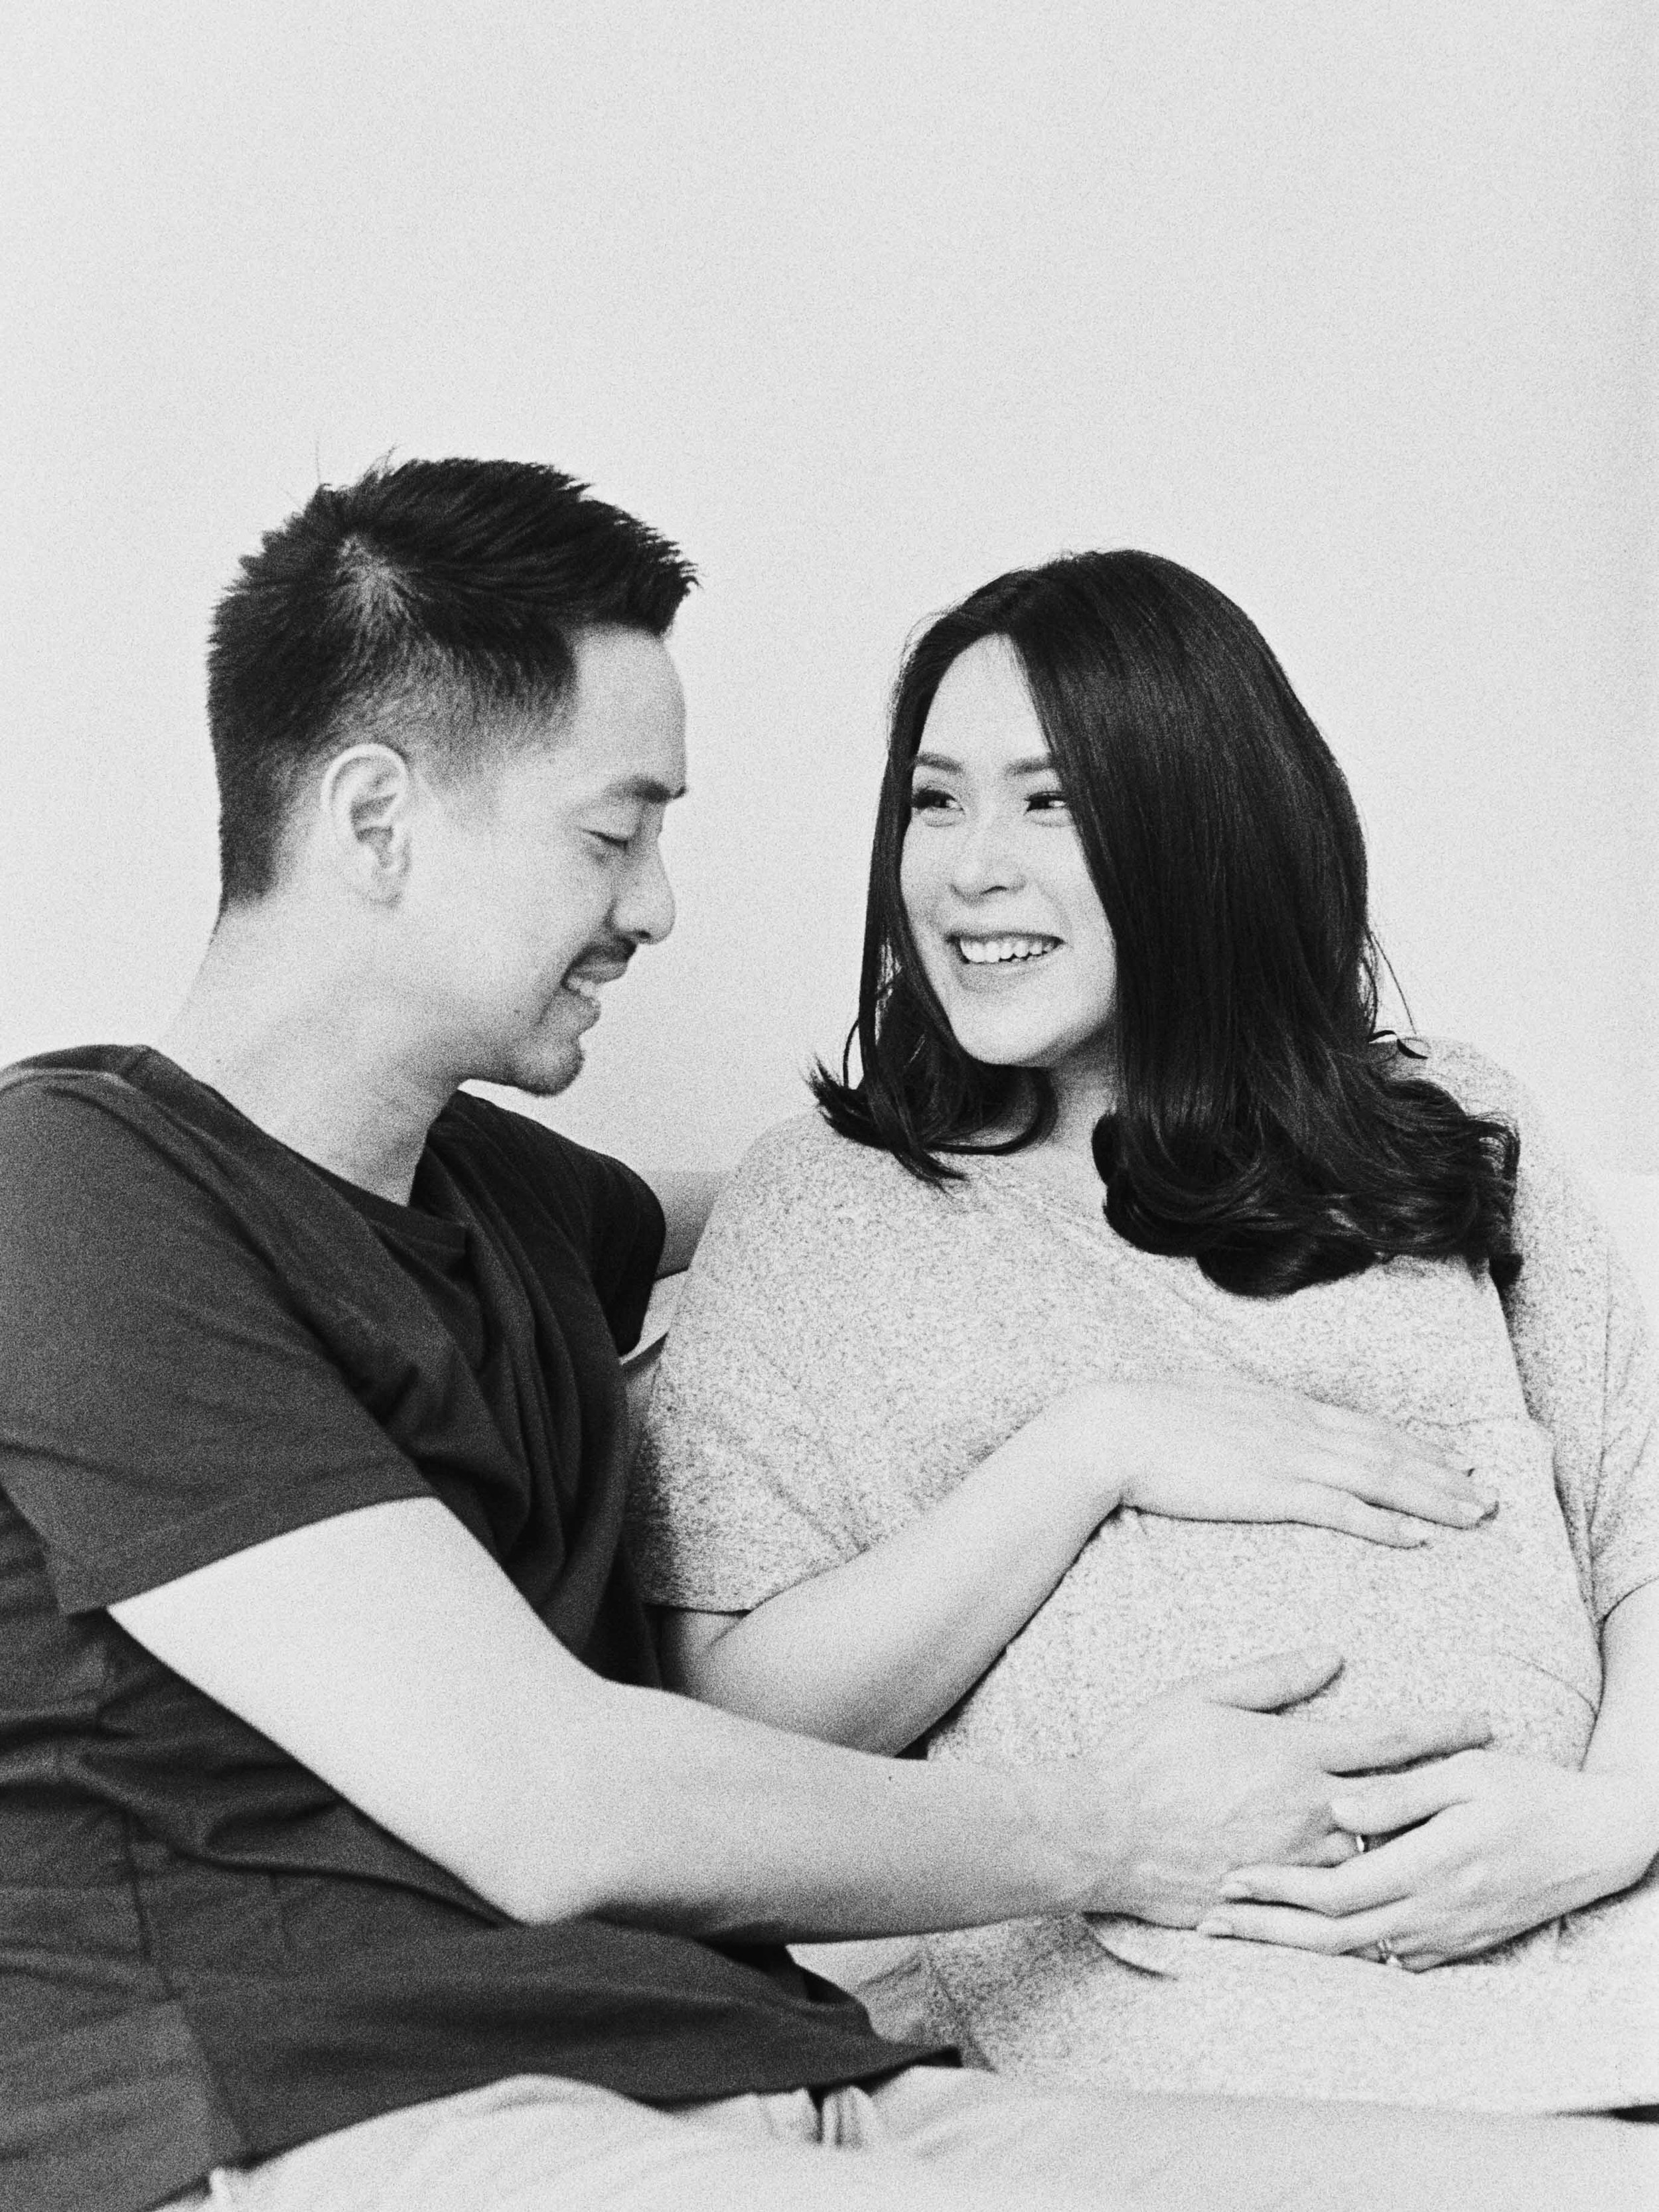 Gaby and Tim-Relaxed-Airy-Simple-Maternity Portrait Photoshoot-At Home-Jakarta-Studio June-Film Photography & Styling-7.jpg